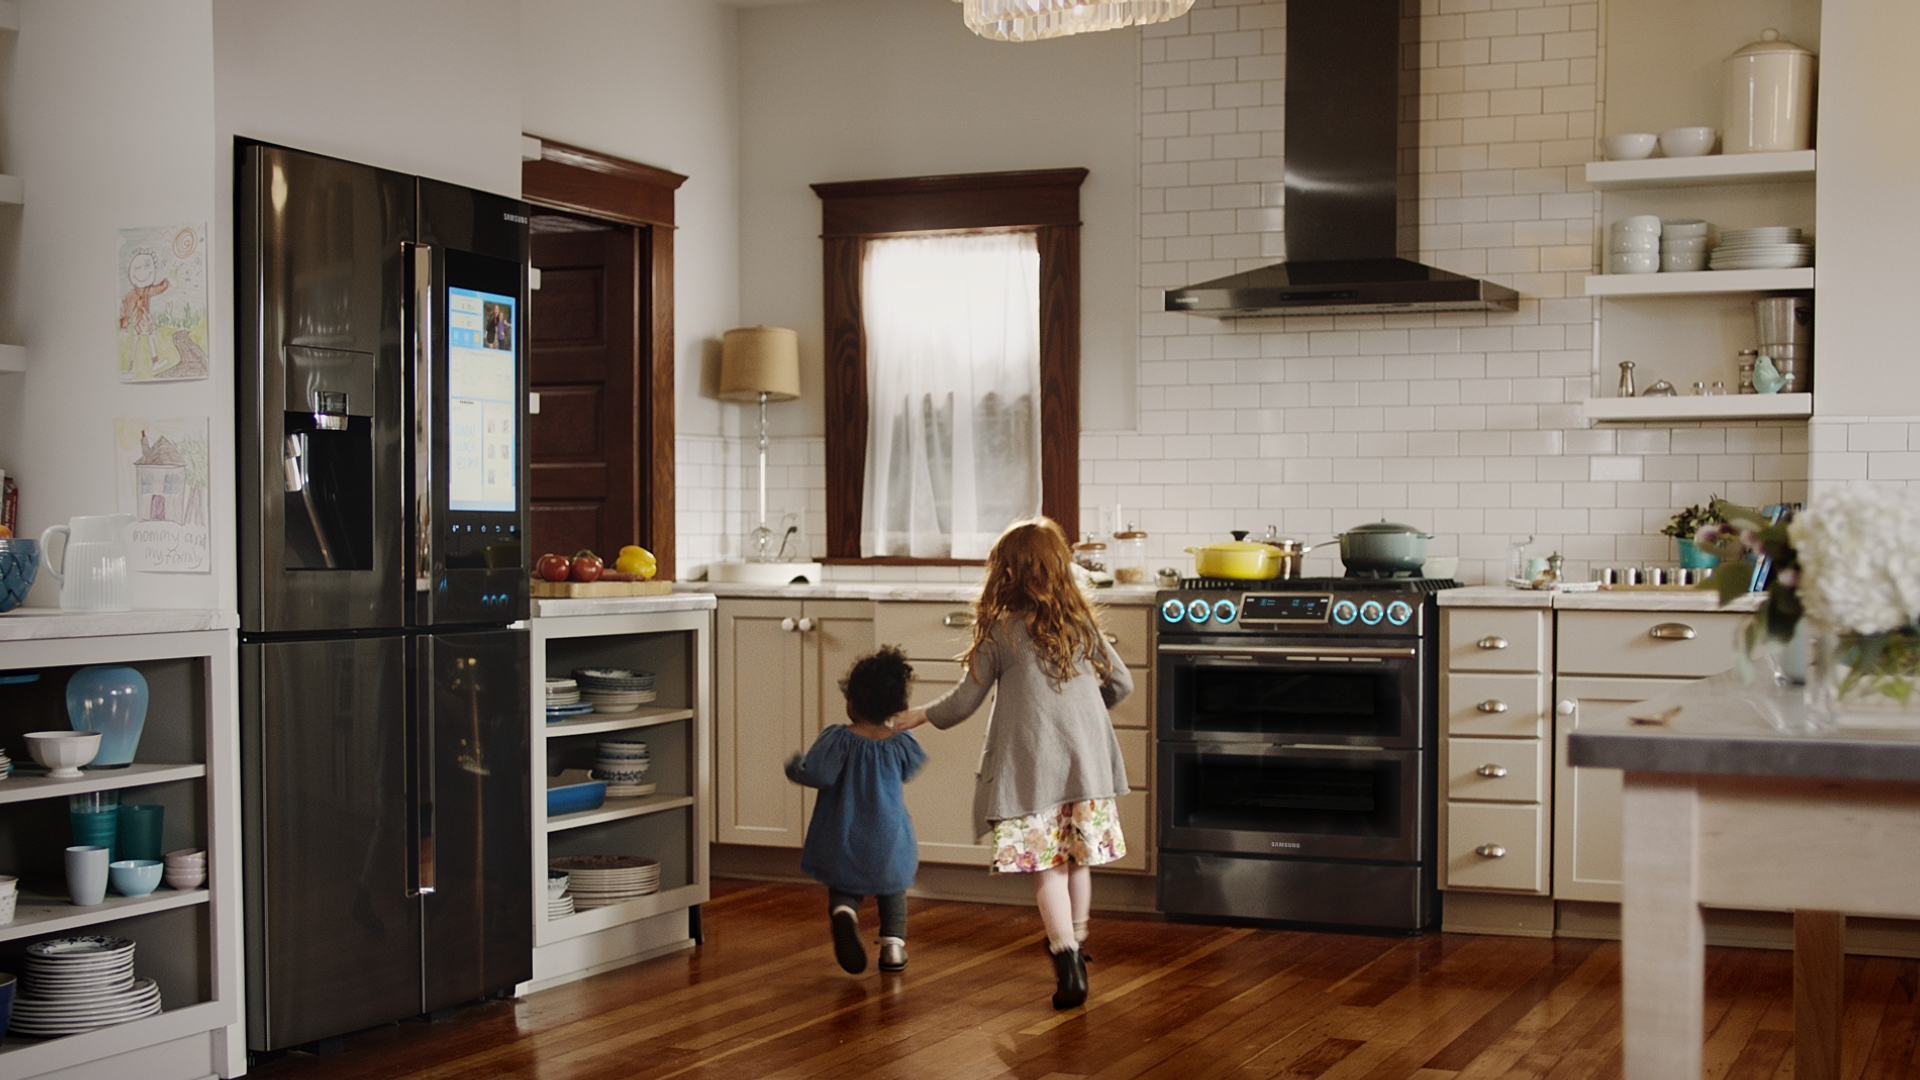 Samsung Helps Homeowners Get Ready To Get Together For The Holidays